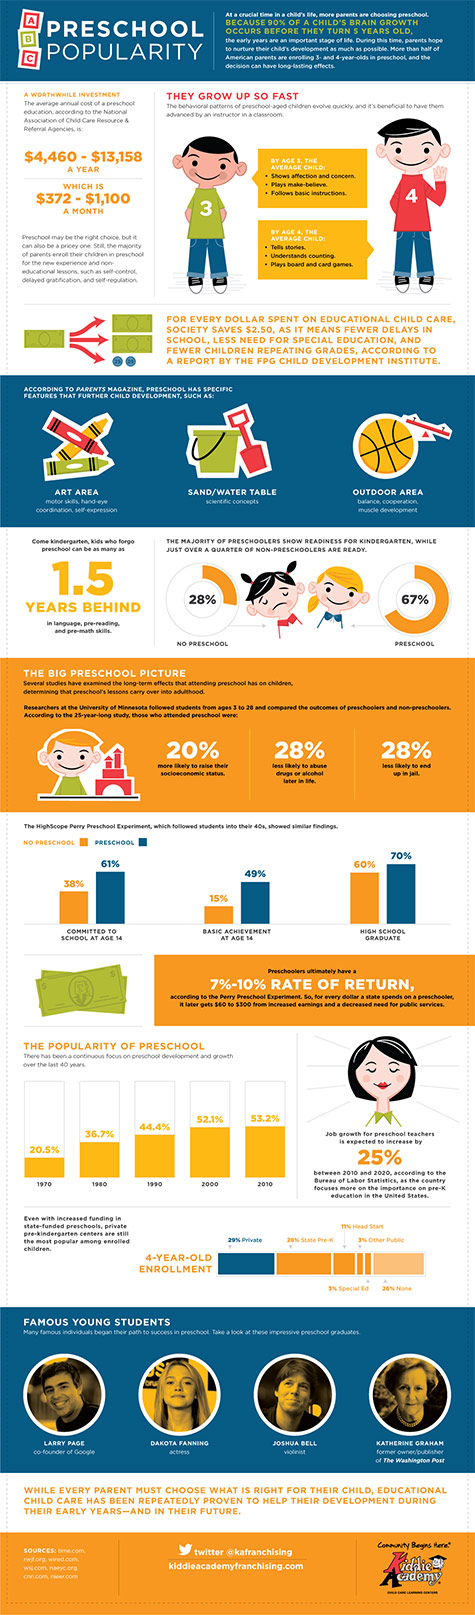 Preschool Popularity [Infographic]